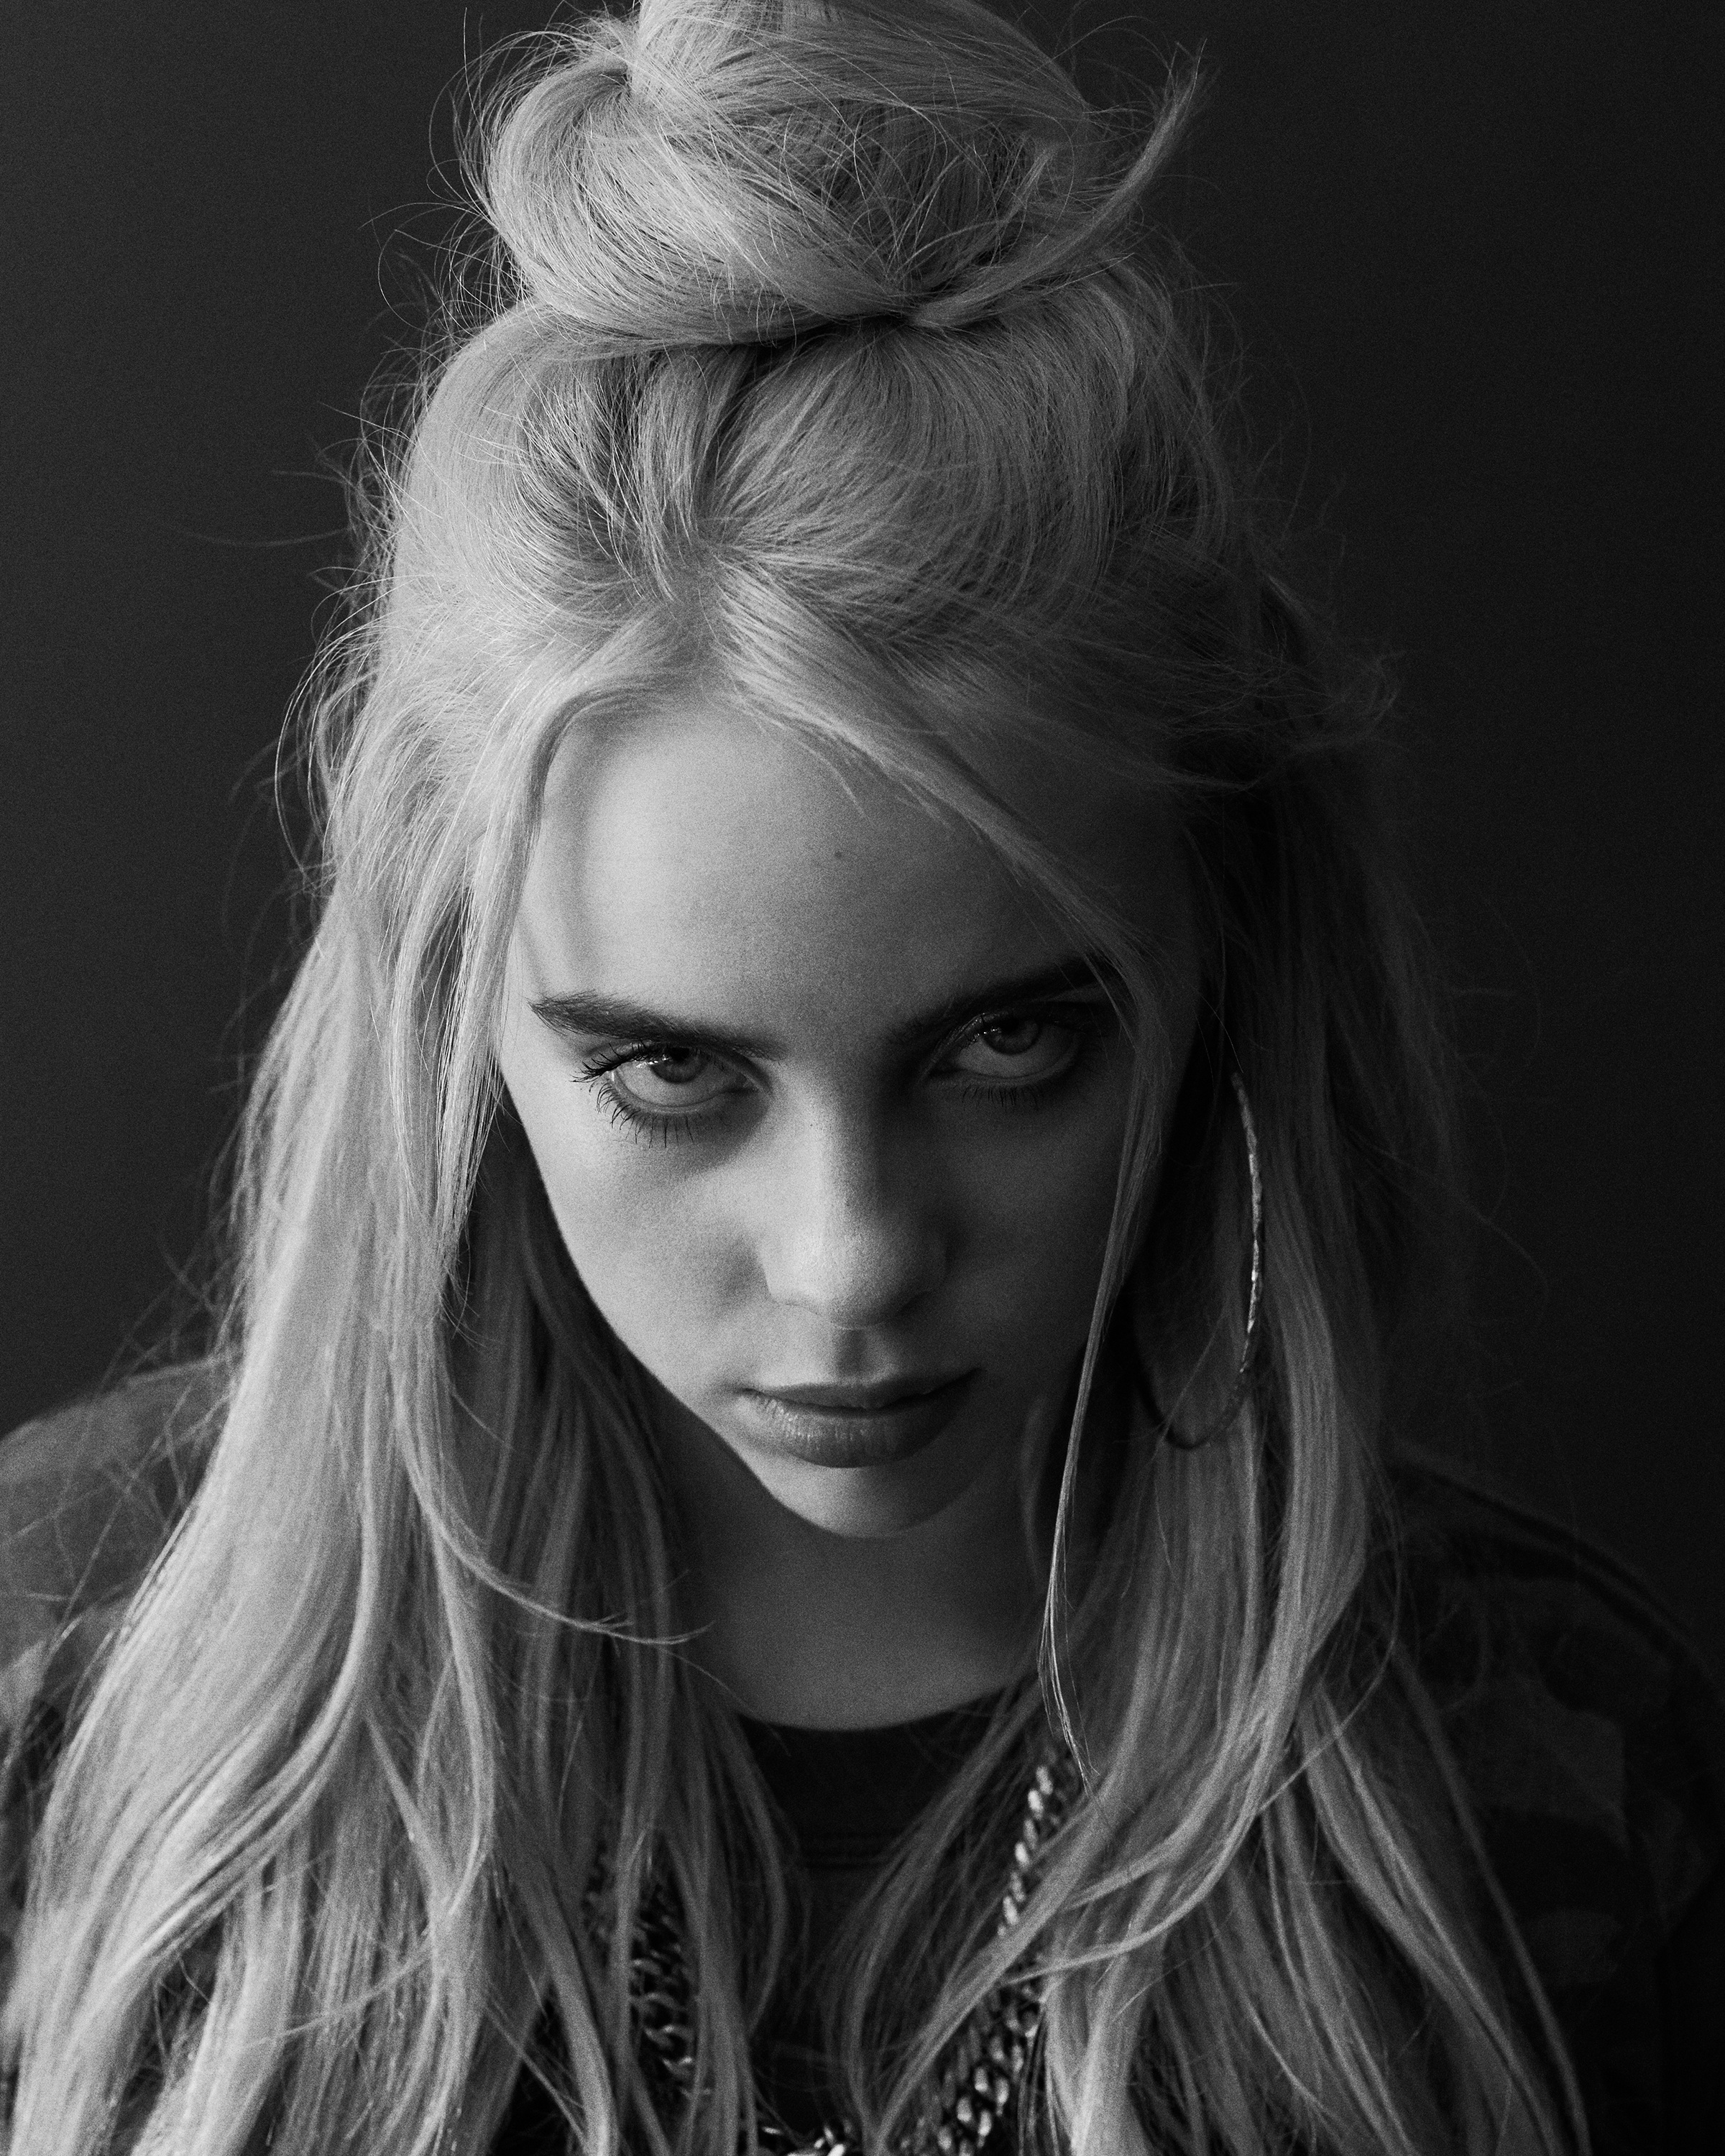 BILLIE+EILISH+1.jpg